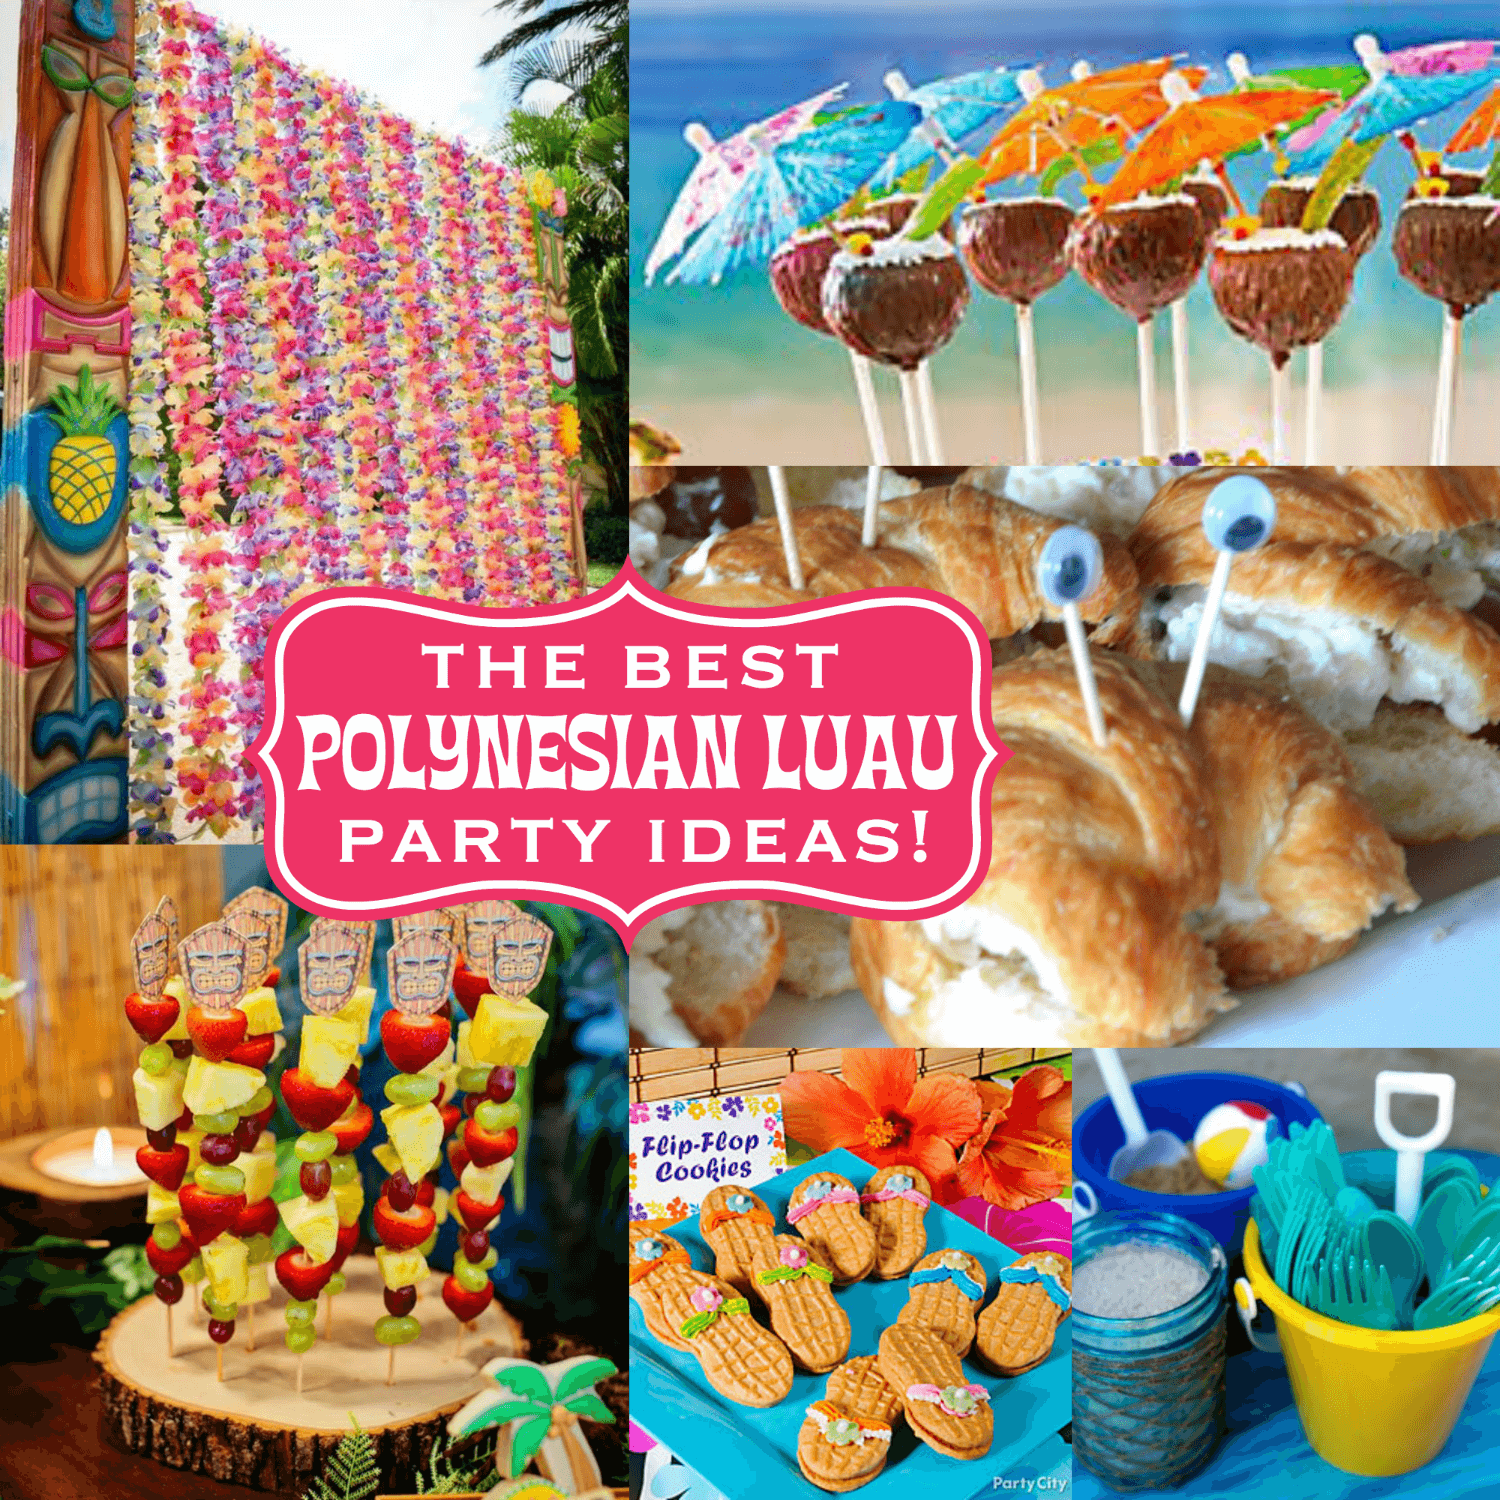 The Best Polynesian Luau Party Ideas For A Tiki Celebration